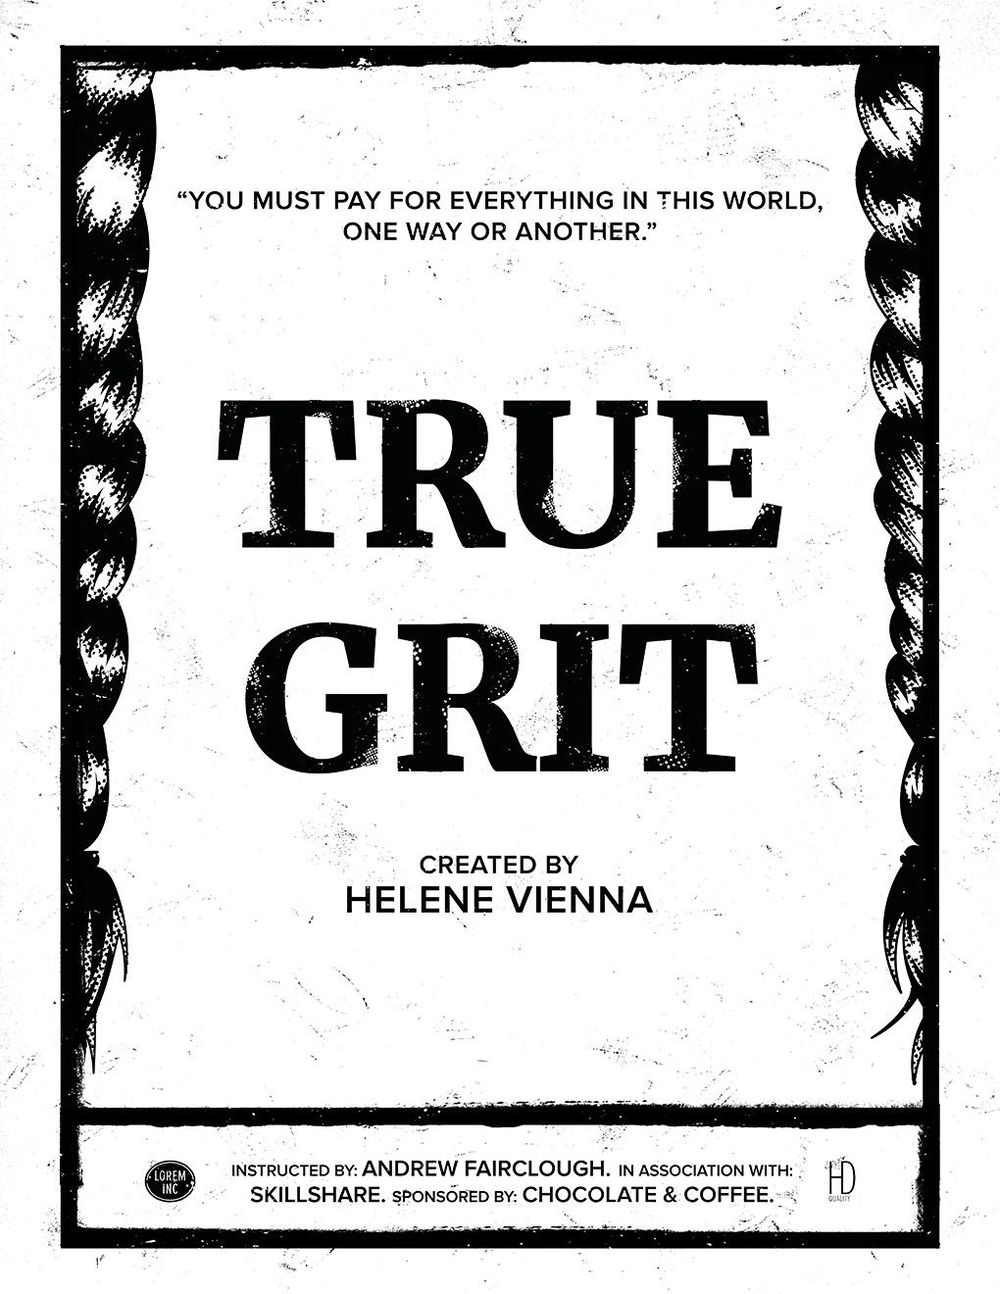 GRIT by HELENE VIENNA - image 4 - student project